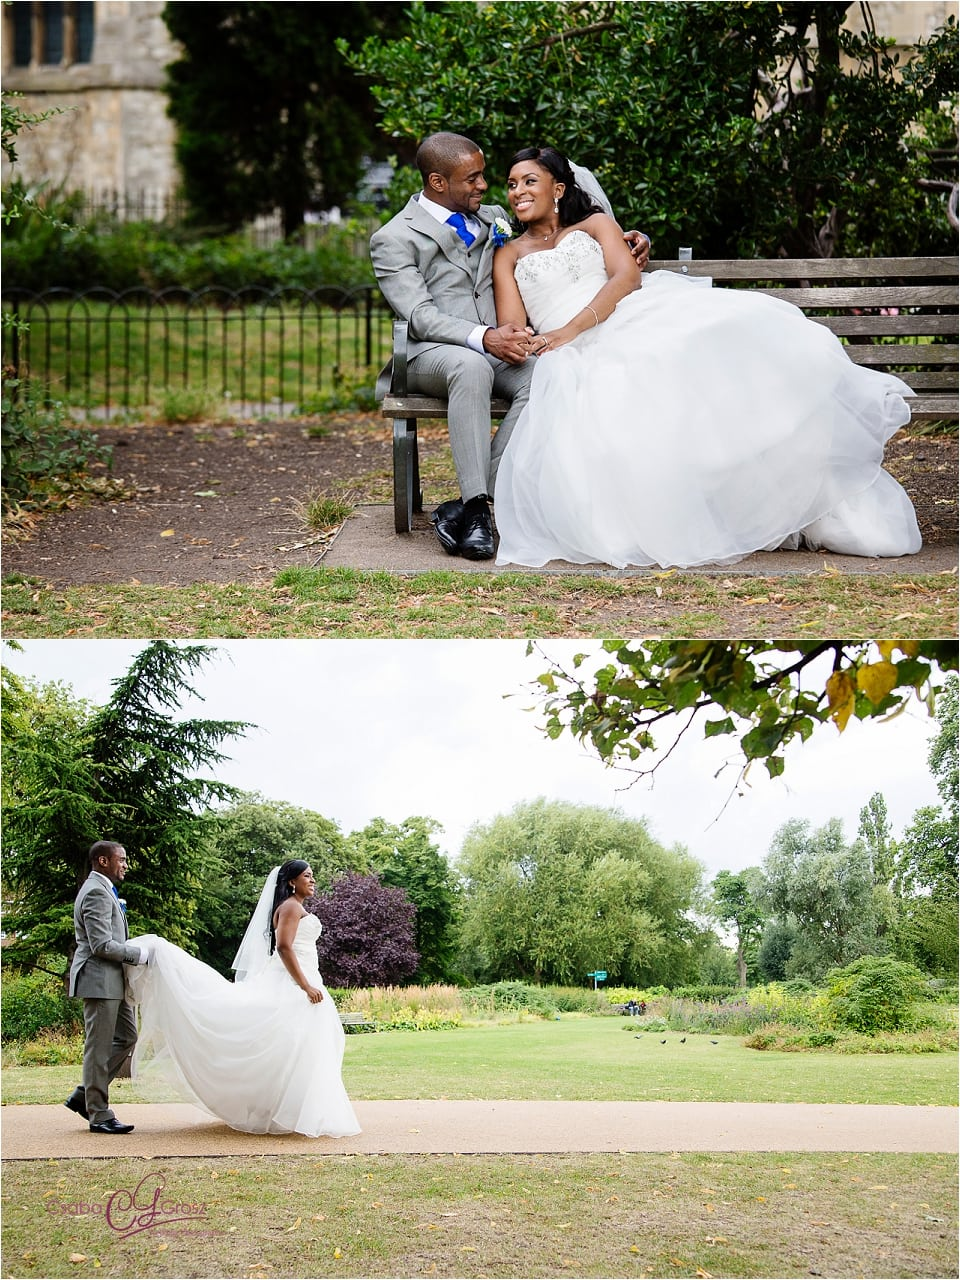 Ola and Ashley - Stoke Newington Wedding Photography9